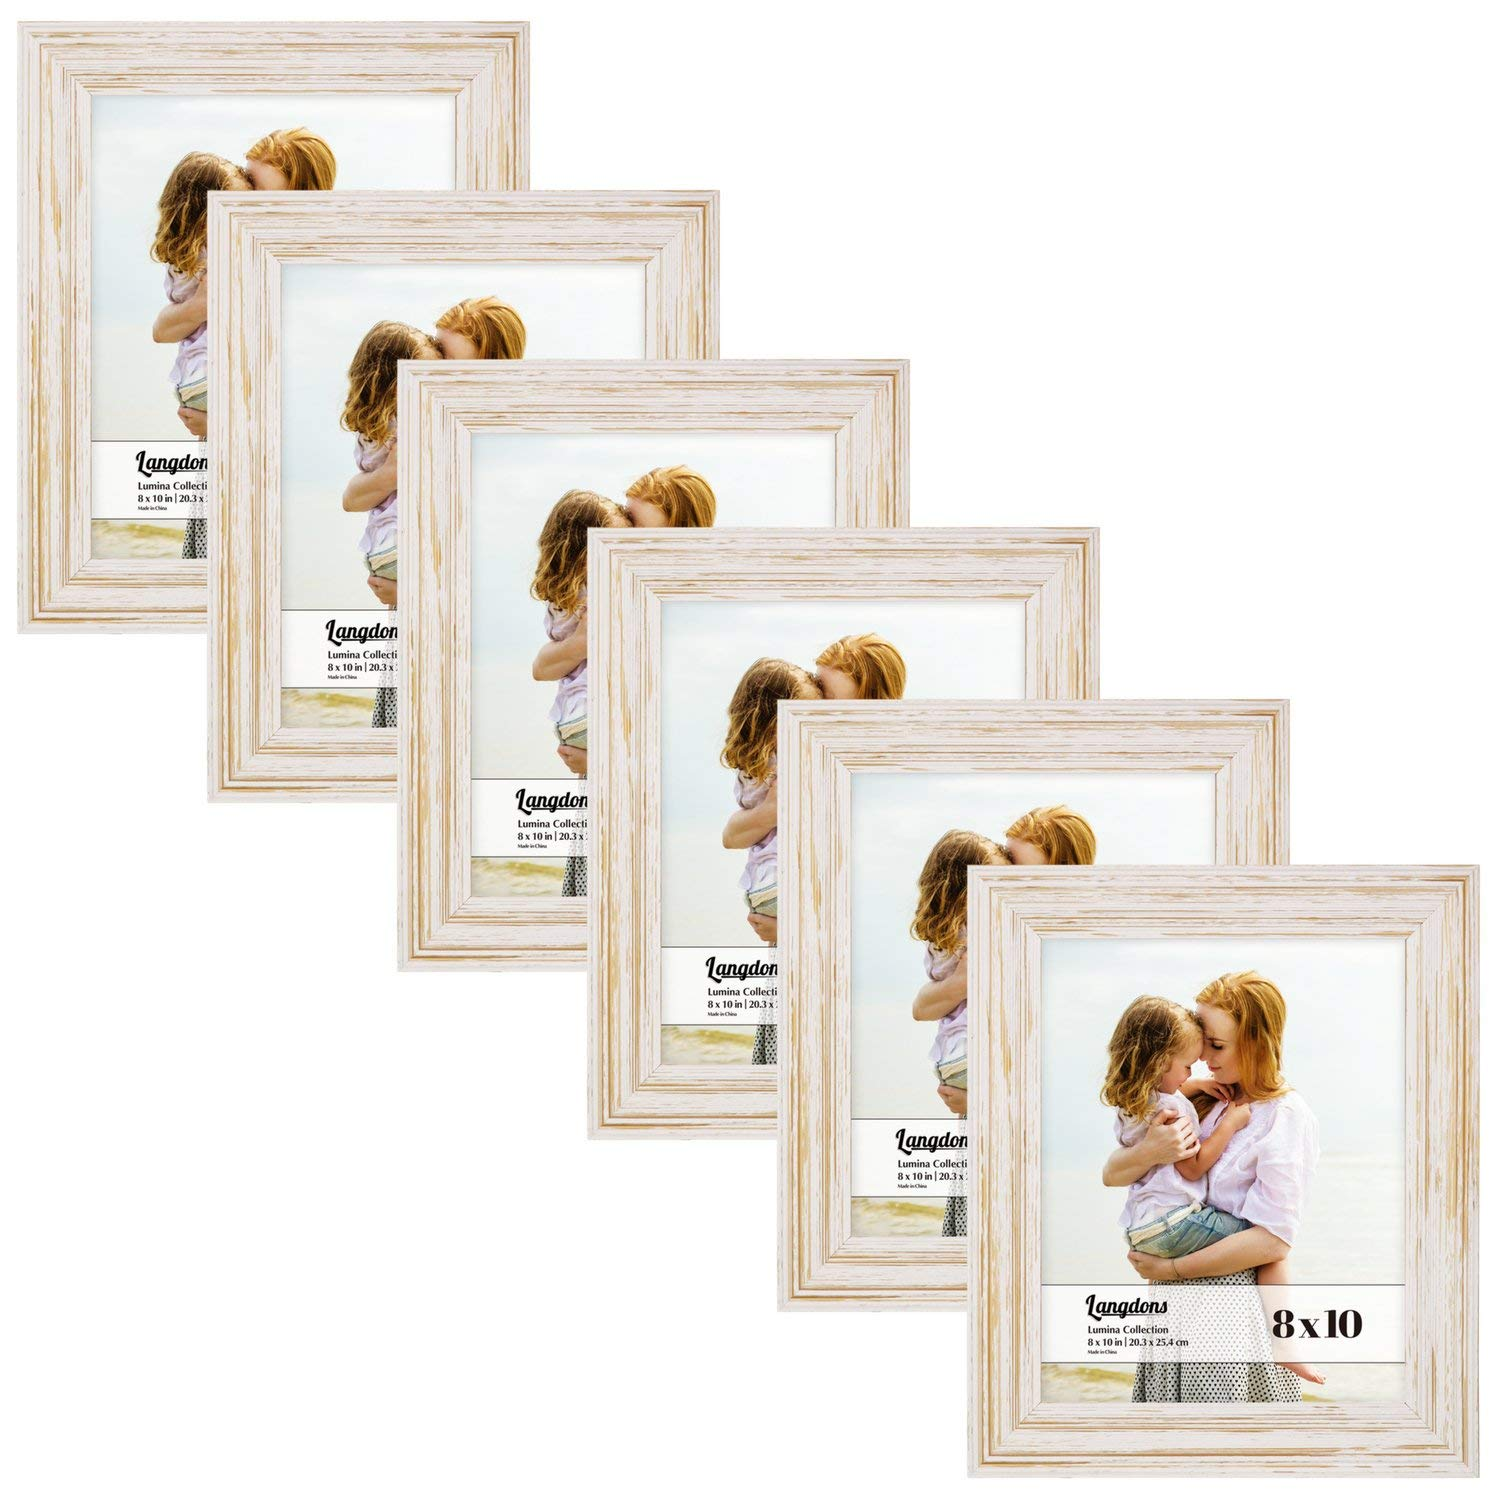 Langdons 8x10 Picture Frame Set (6-Pack, Weathered White) Solid Wood Photo Frames 8x10, Wall Hanging or Table Top, Display White Picture Frame 8x10 Vertically or 10x8 Horizontally, Lumina Series